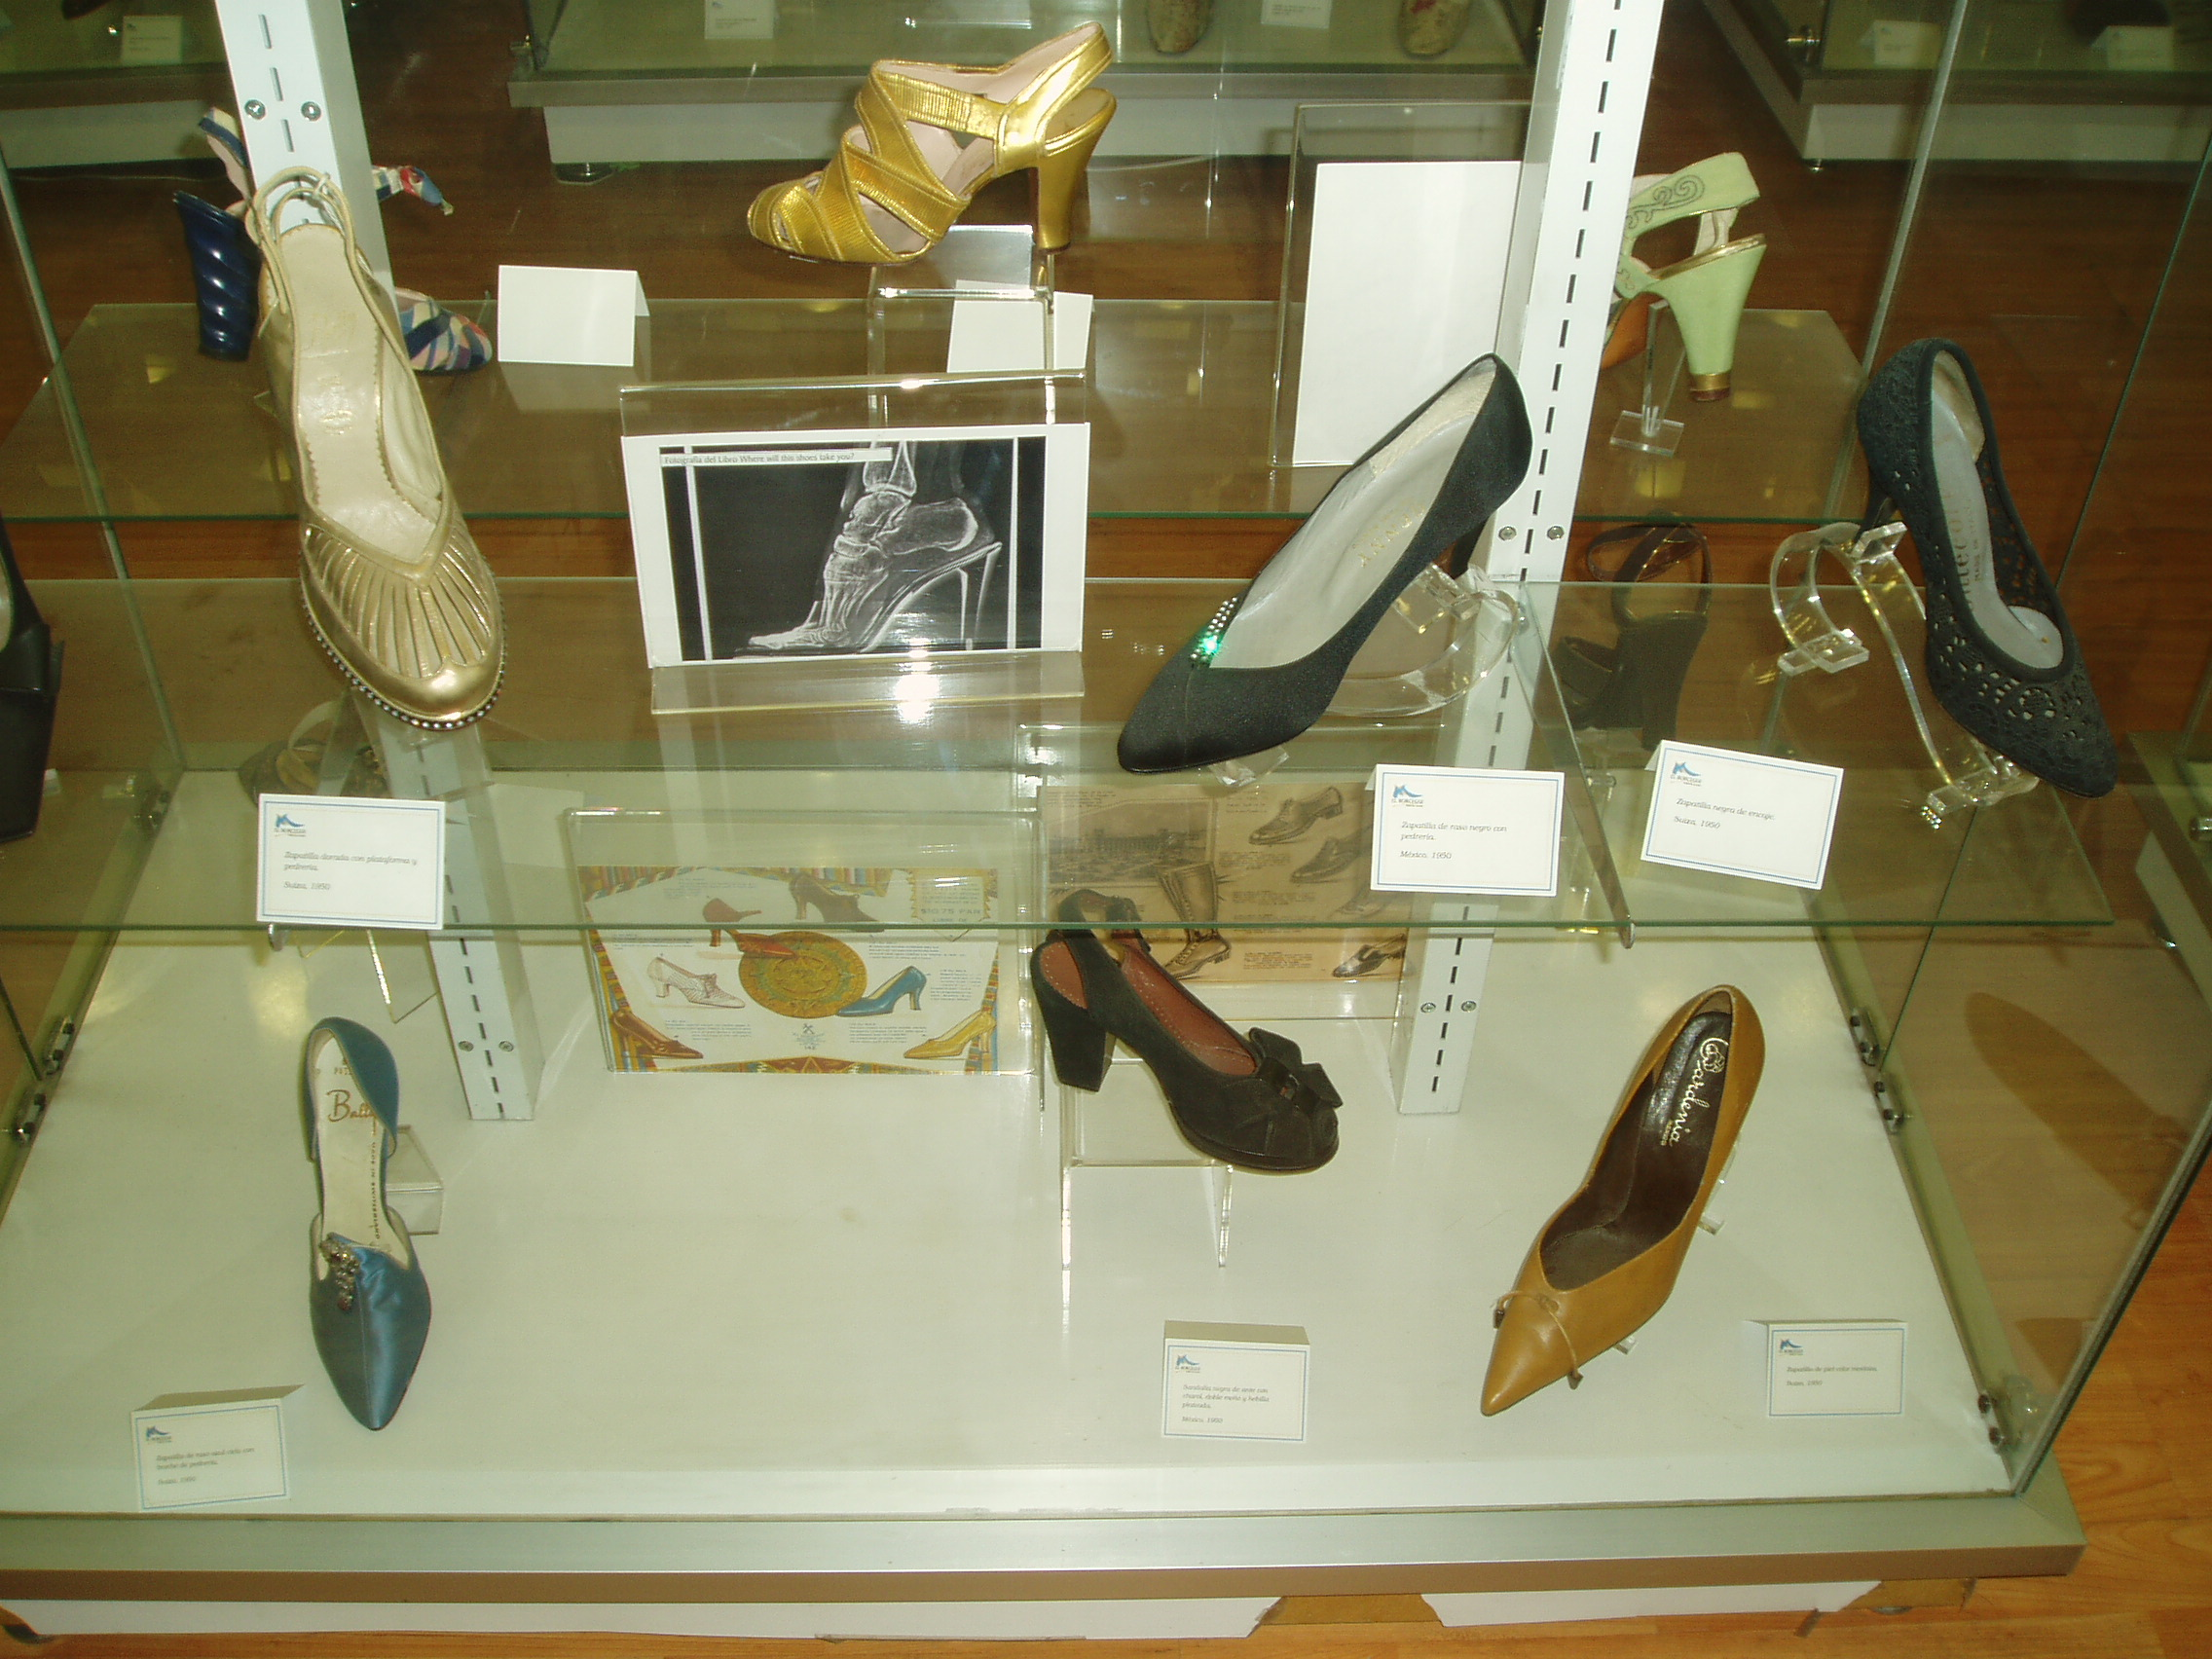 GORGEOUS DRESSY 1950'S SHOES AT THE SHOE MUSEUM